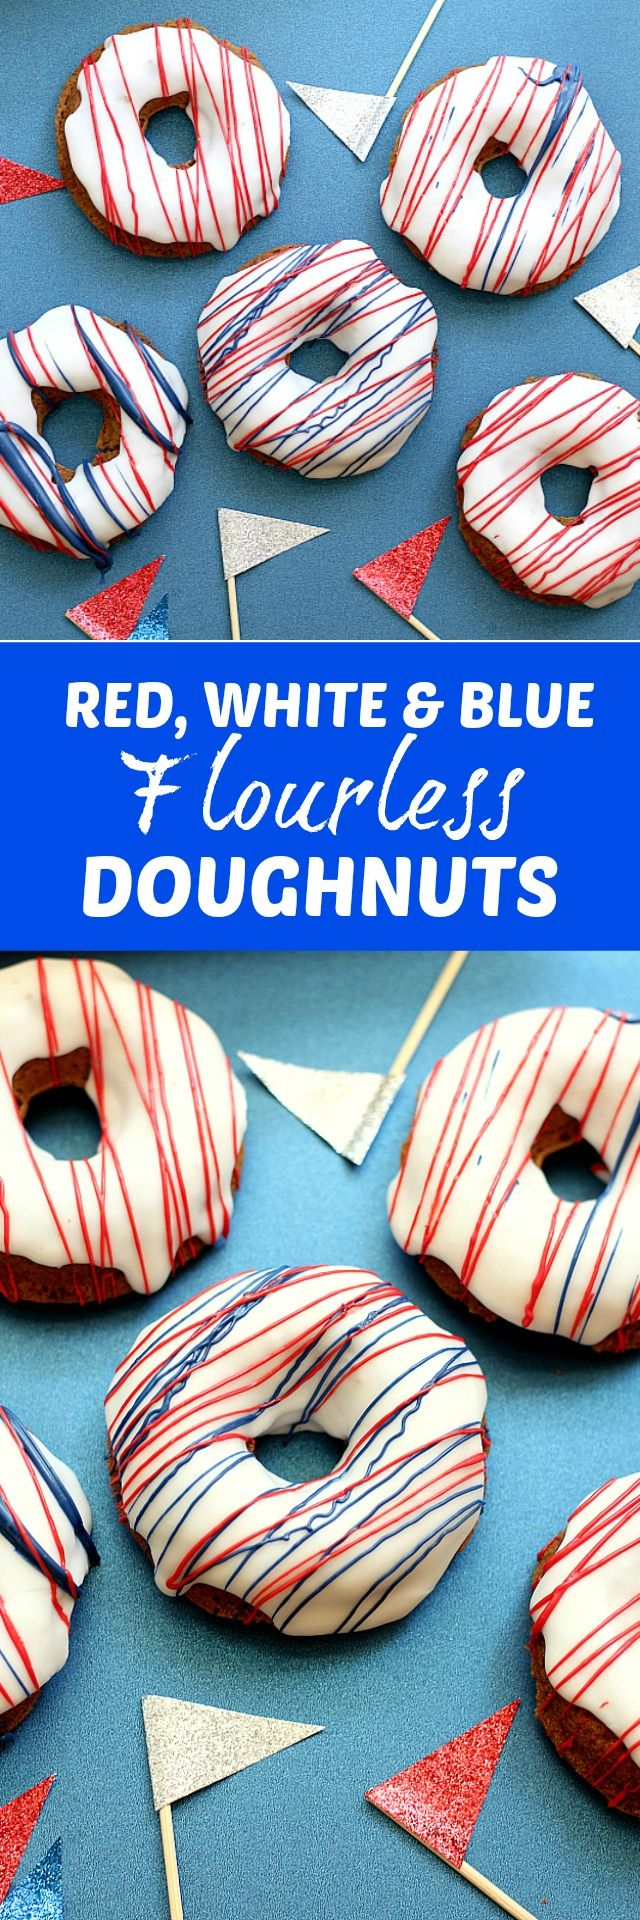 Healthy donuts recipe spiced like sweet cake and are a gluten free, dairy free flour-less moist and fluffy dessert food or breakfast treat! Baked and topped with red, white and blue icing for anytime or patriotic festivities! | Delightful Mom Food | #patriotic #redwhiteblue #fourthofjuly #memorialday #laborday #holiday #recipe #dairyfree #glutenfree #flourless